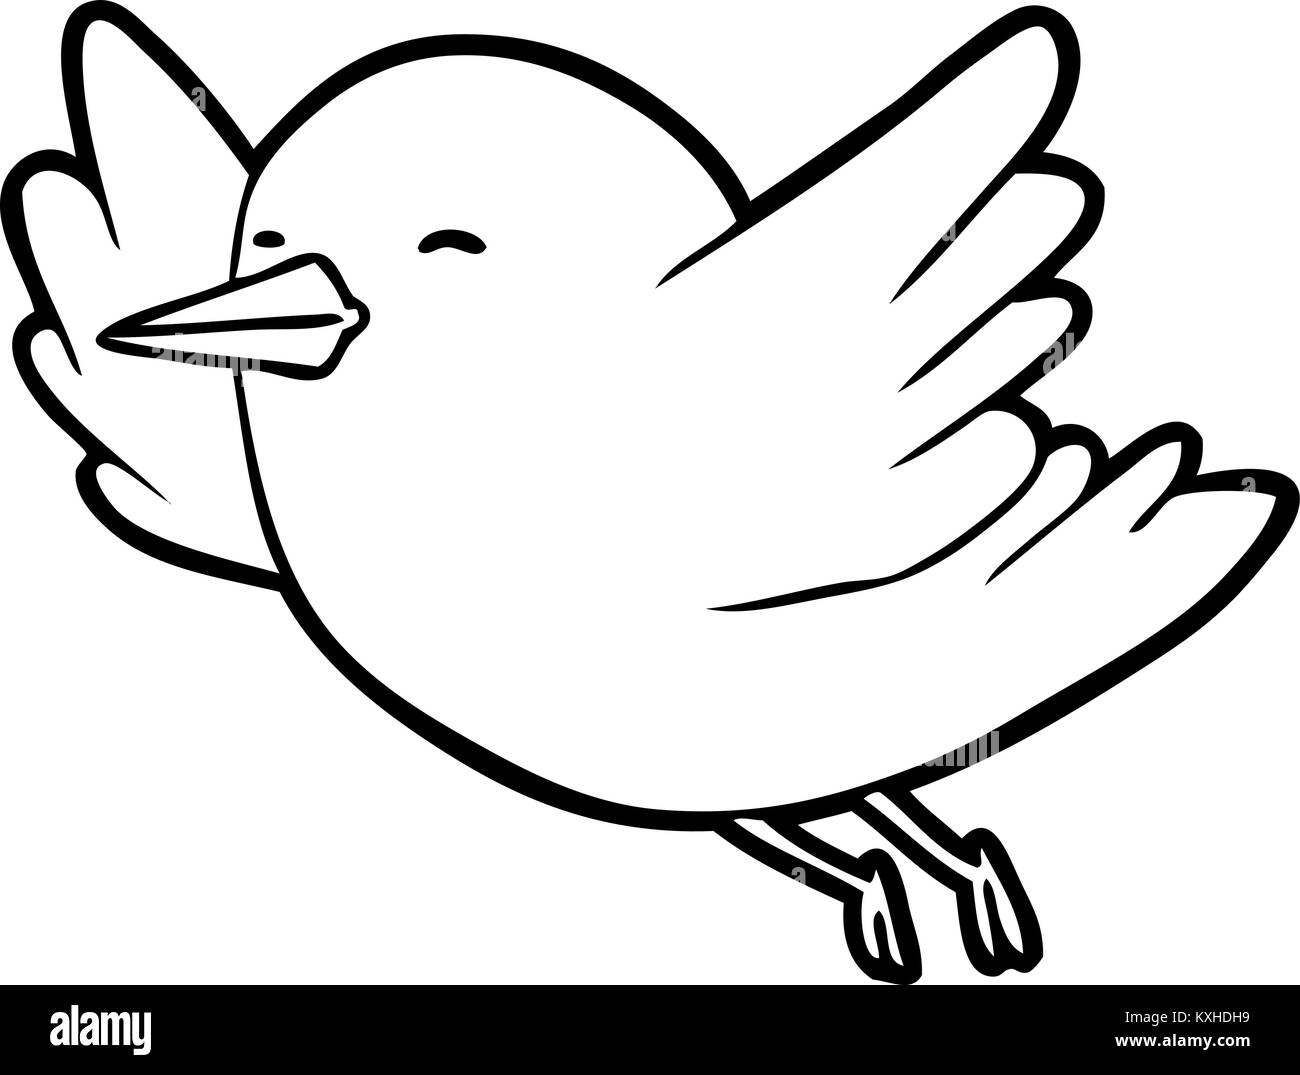 Line Drawing Of A Bird Flying Stock Vector Image Art Alamy